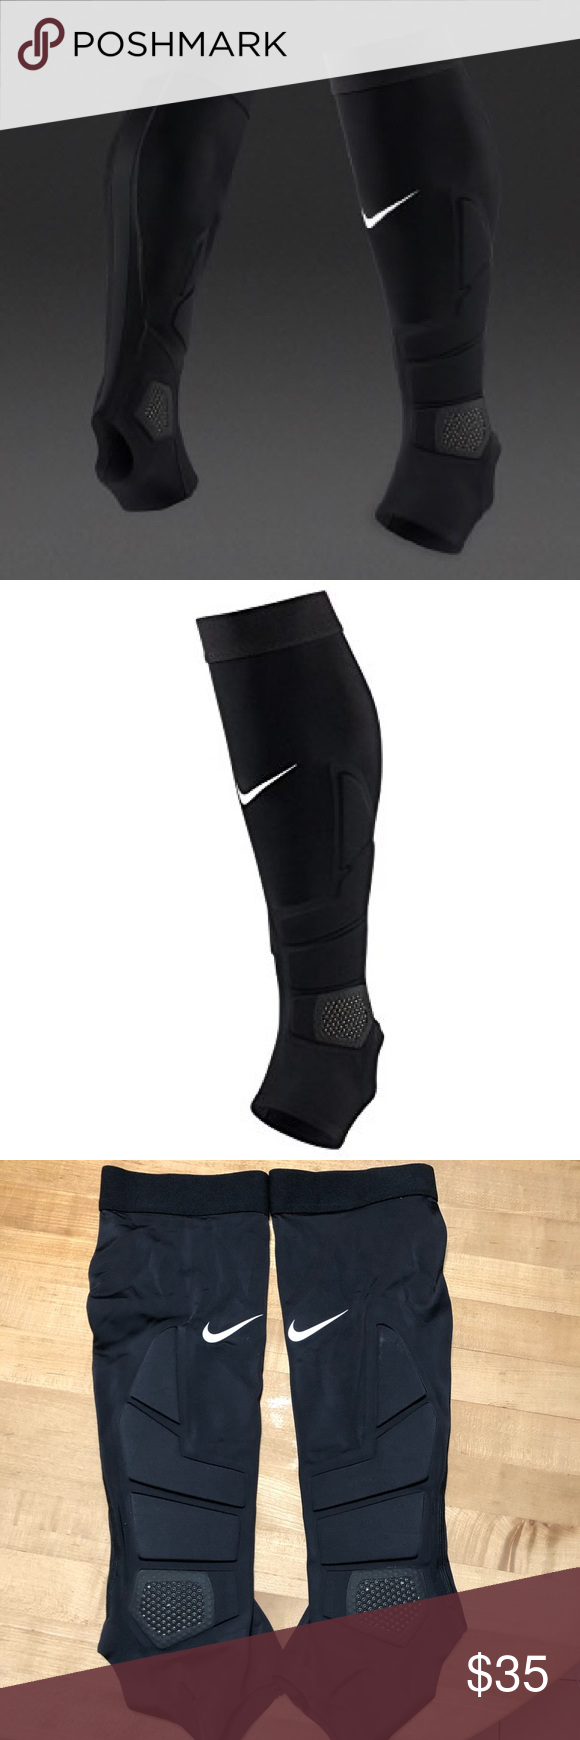 85b23b944ef65 NEW ⚽ Nike Hyperstrong Match Soccer Padded Sleeve Nike Unisex HyperStrong  Match Padded Soccer Sleeves